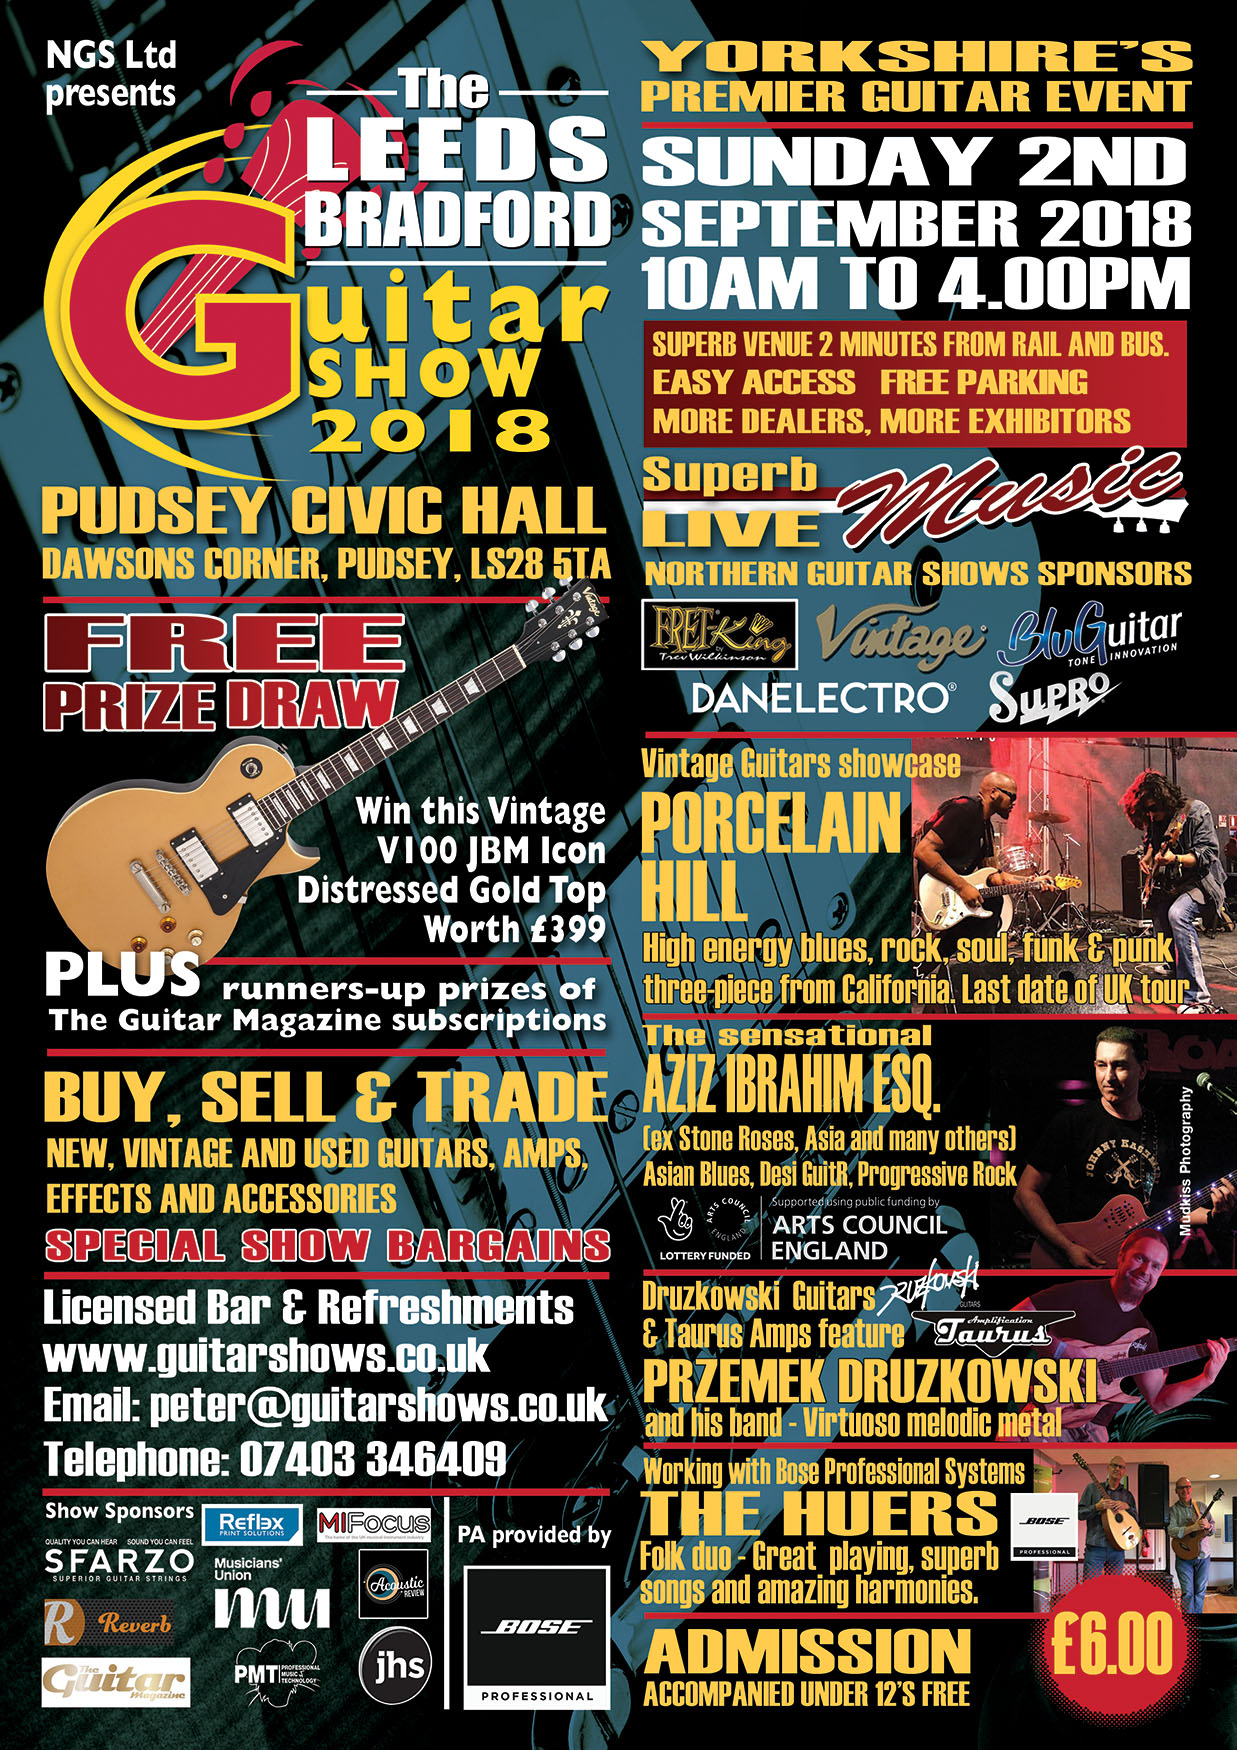 The Leeds/Bradford Guitar Show 2018